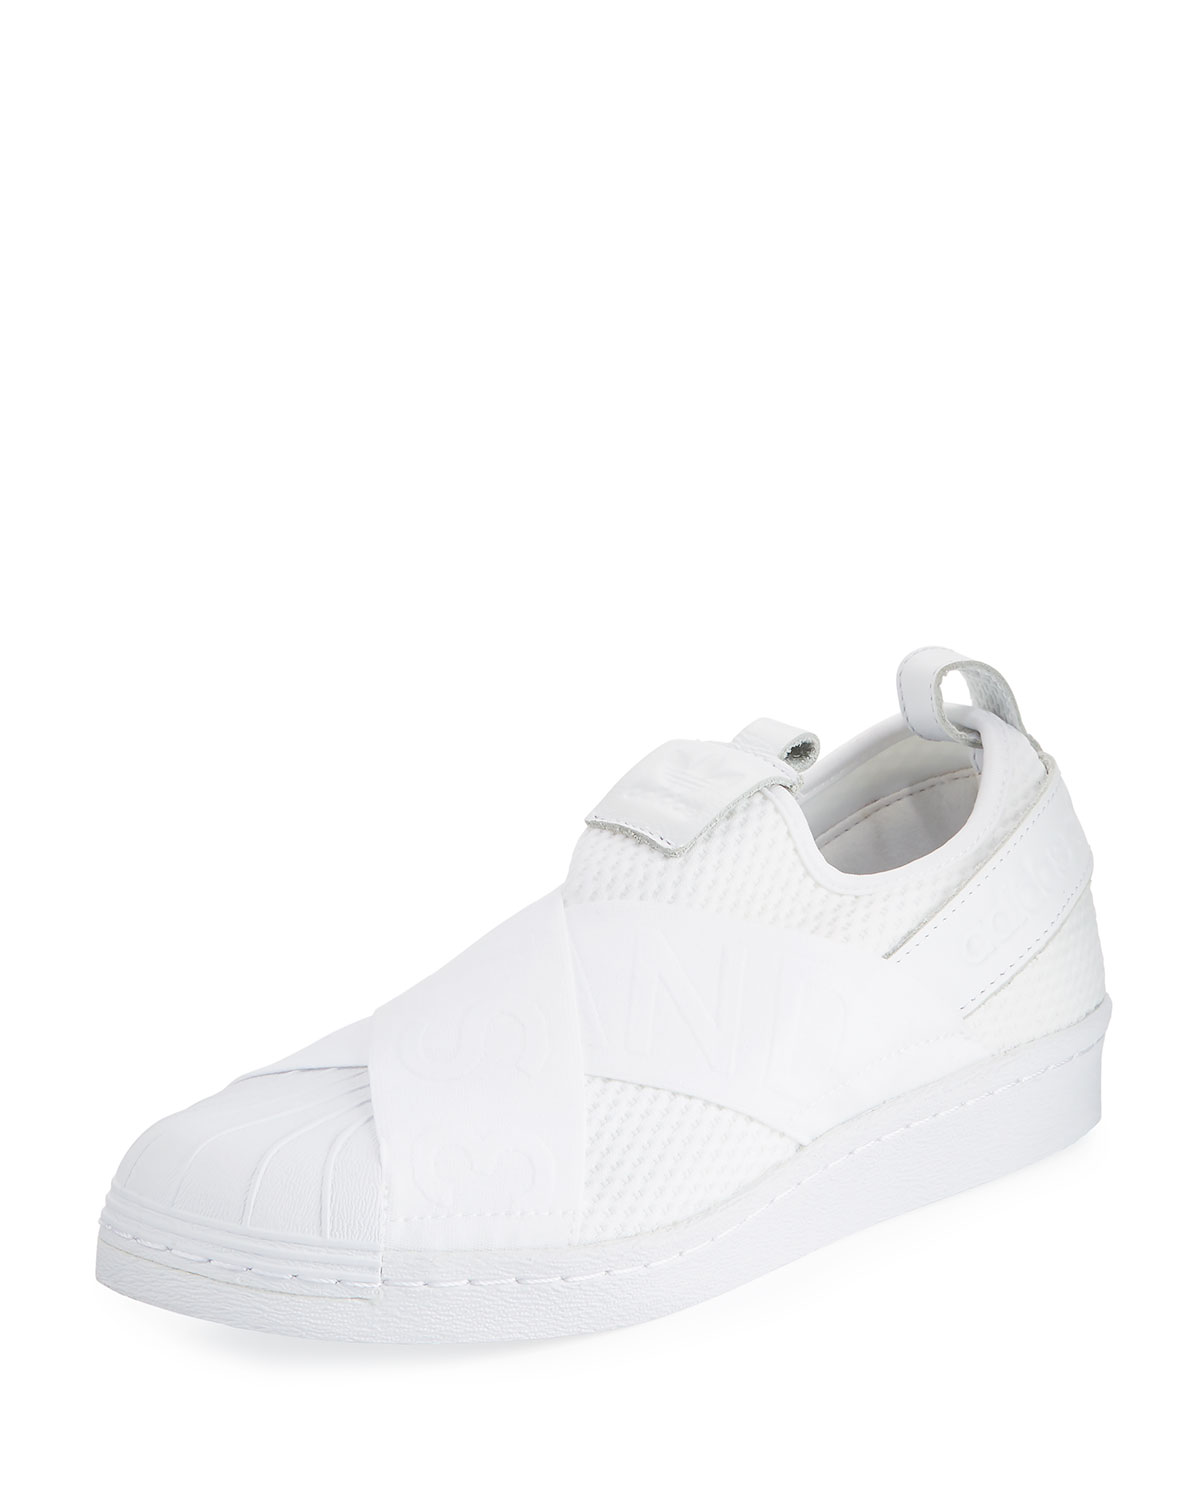 8472fed46f0e Adidas Superstar Slip-On Sneakers